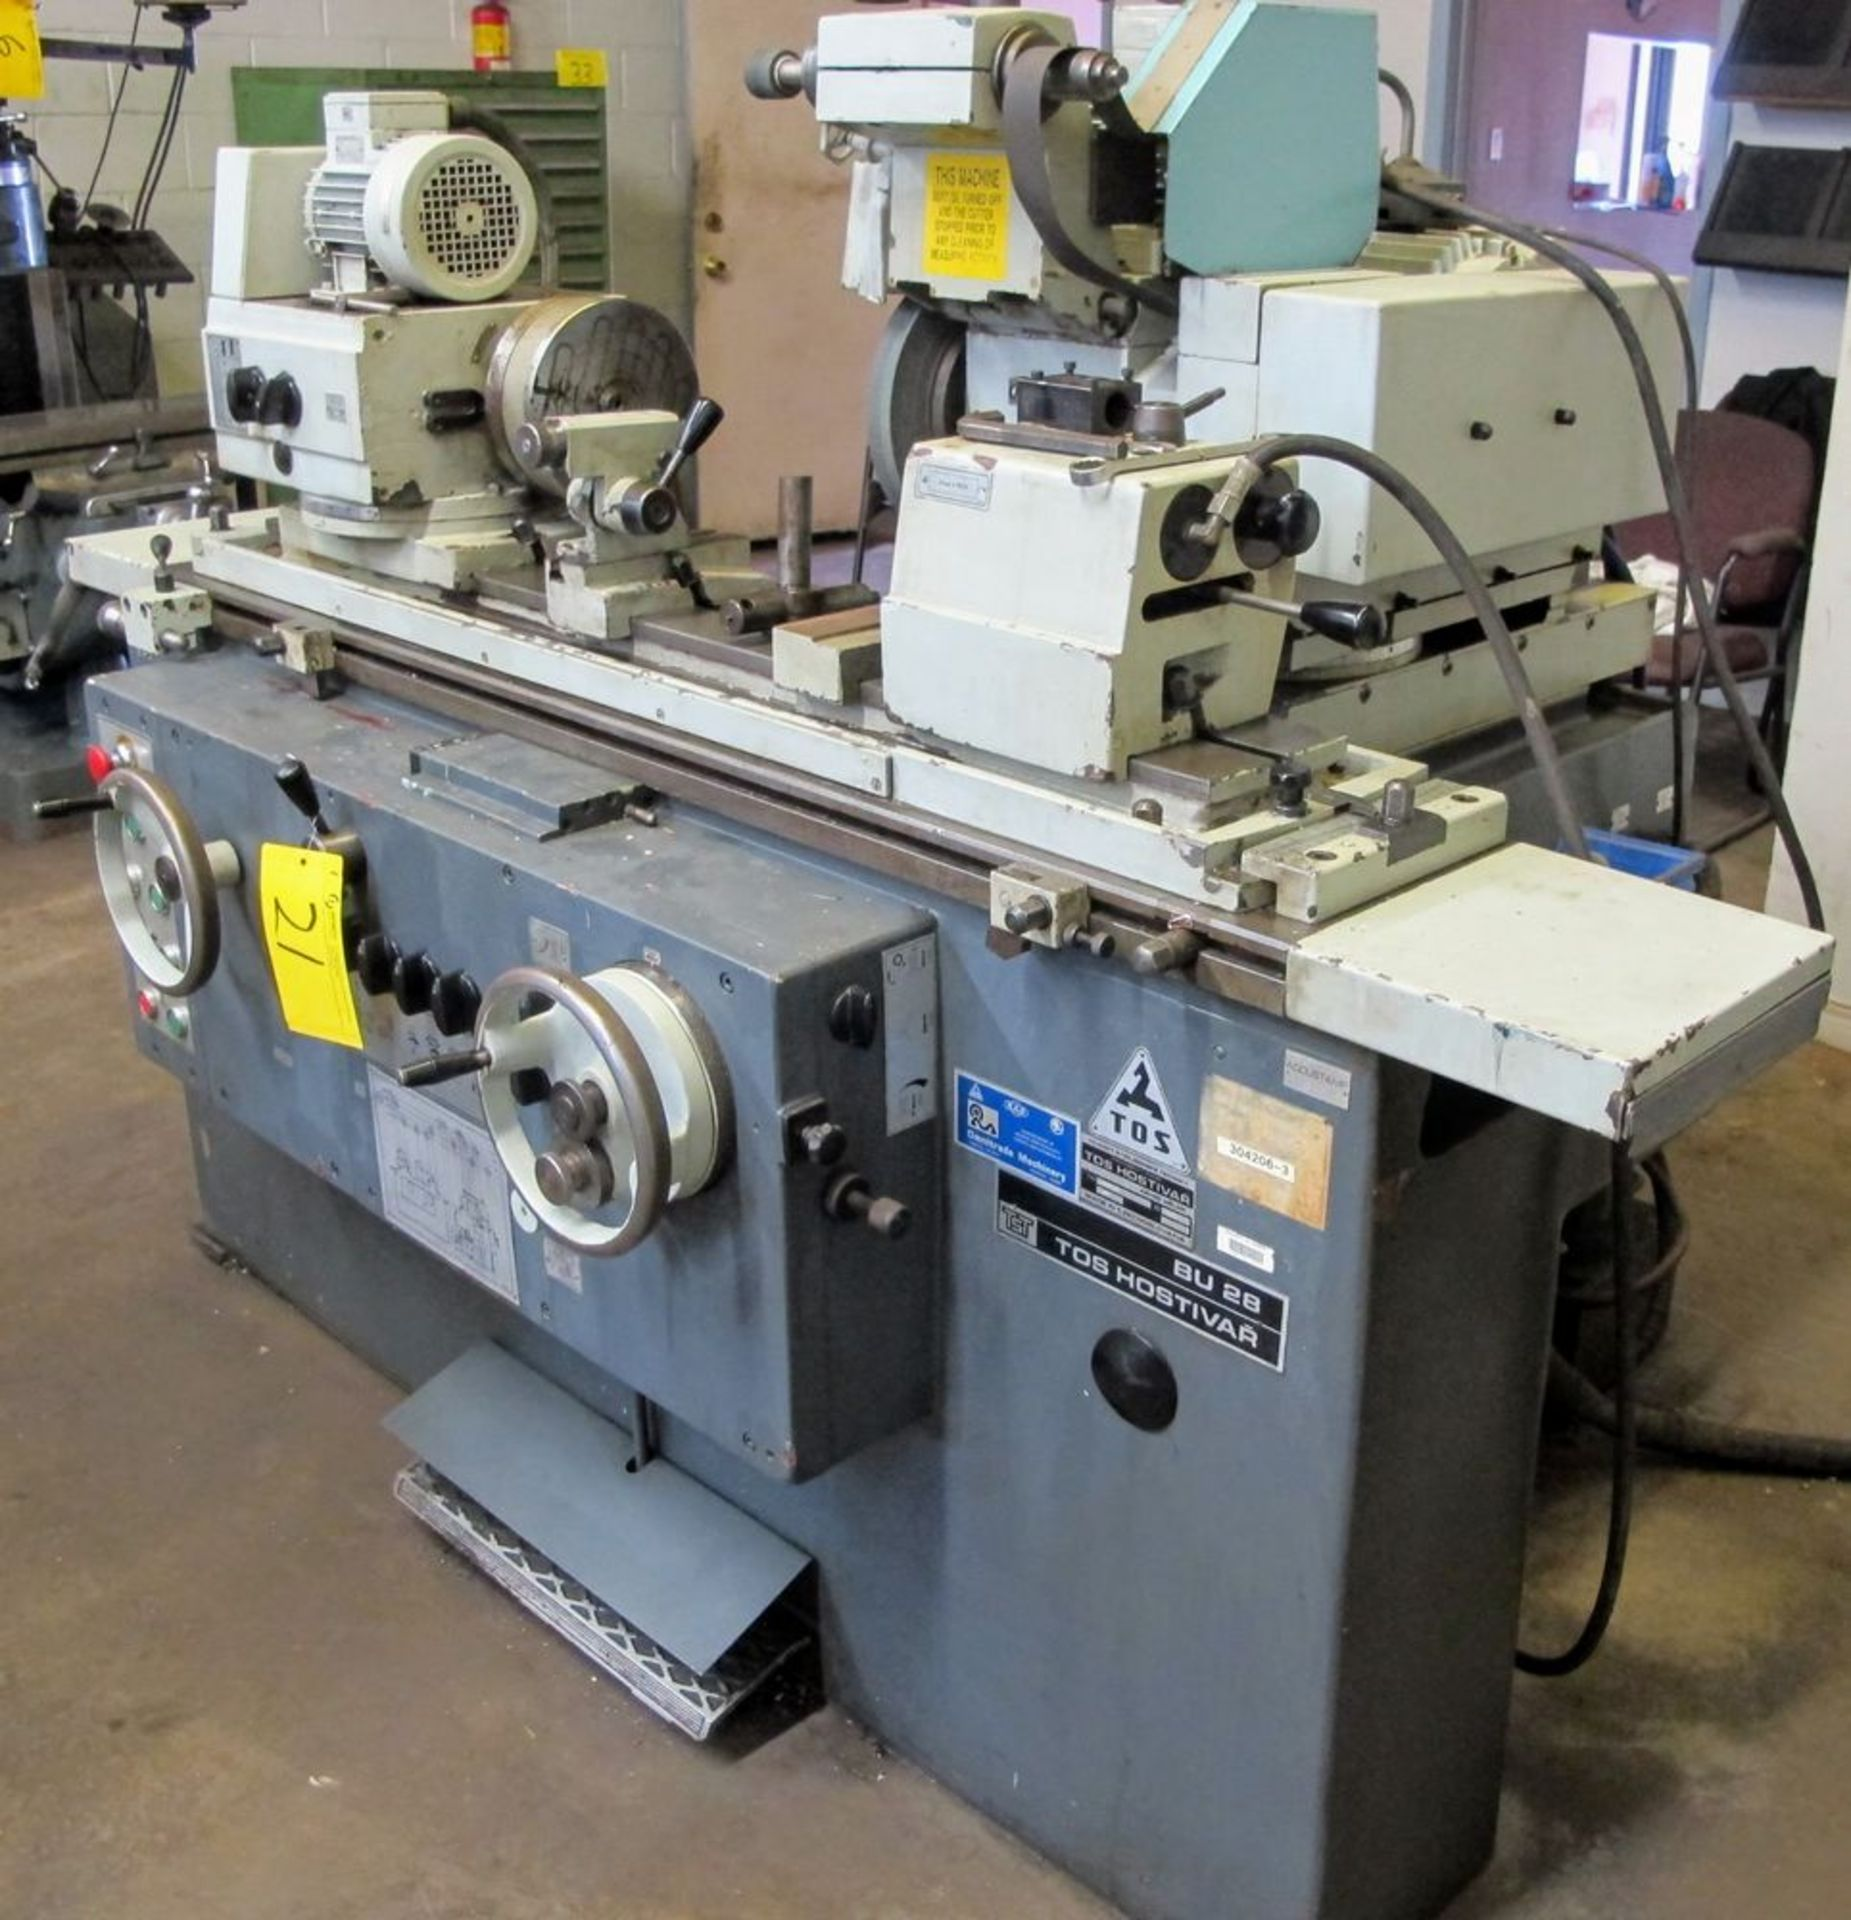 """TOS BU28-630 CYLINDRICAL GRINDER, 11"""" X 24"""", S/N 578016 W/8"""" MAGNETIC CHUCK, TAIL STOCK, TOOL - Image 2 of 6"""